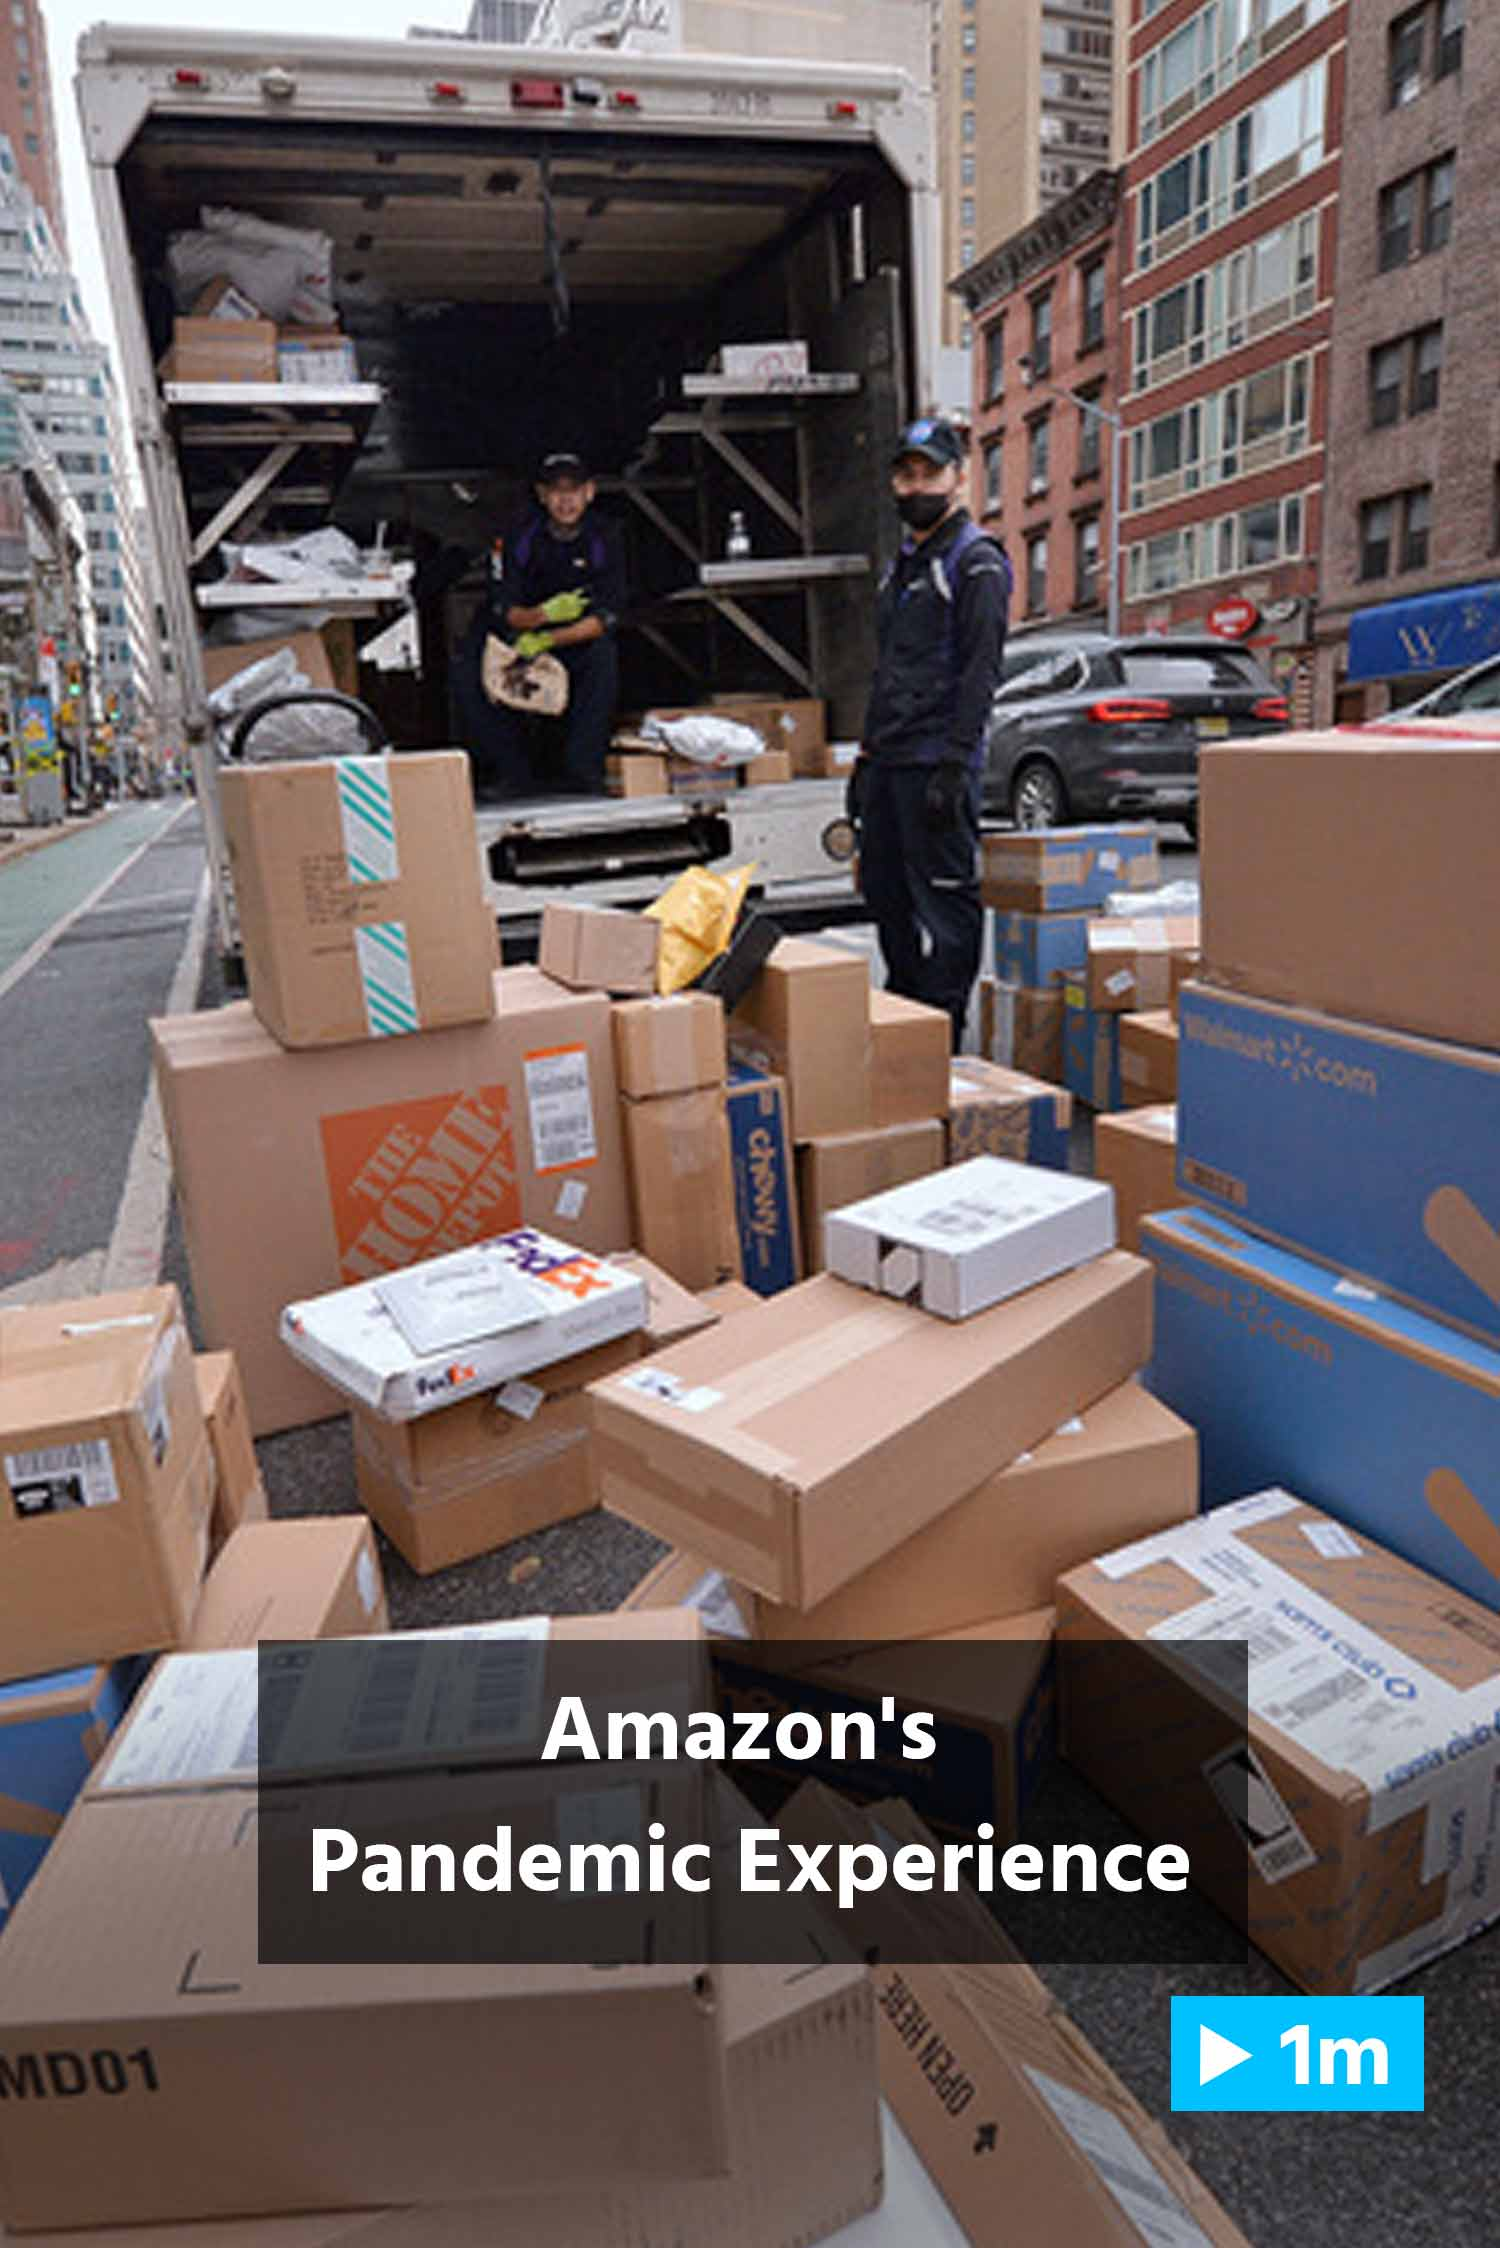 Reuter's Report: Amazon's Pandemic Experience